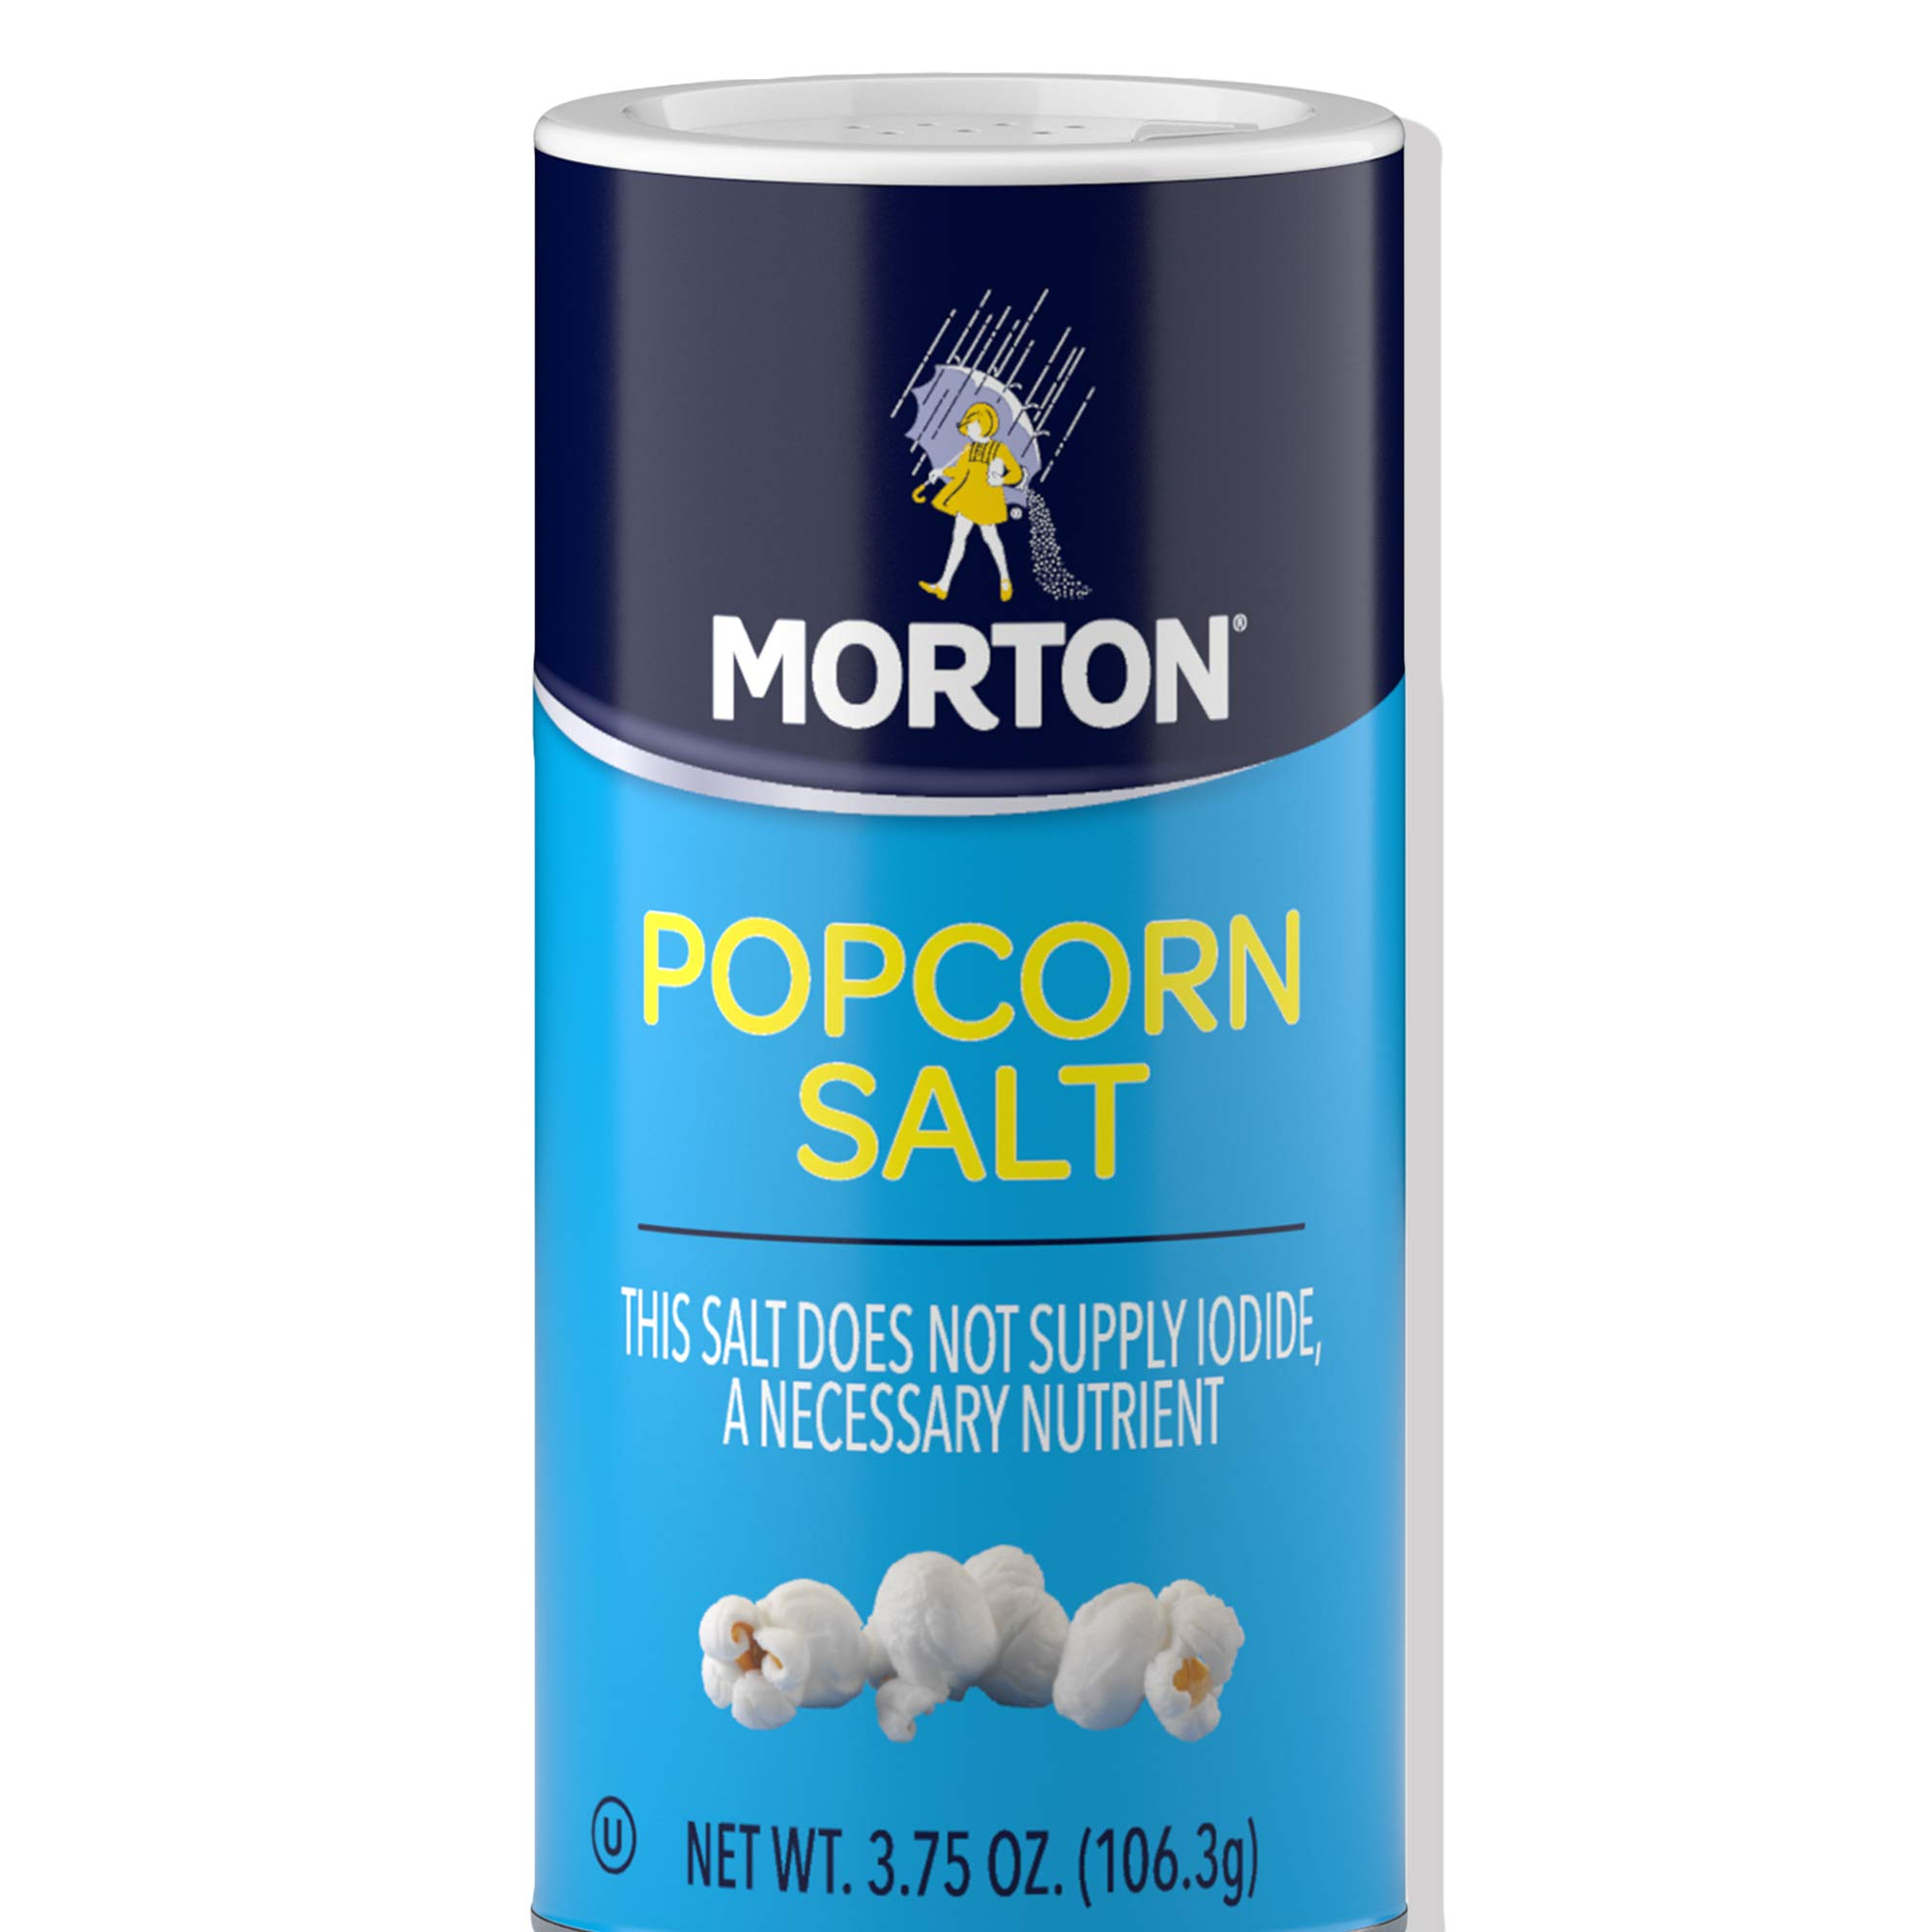 Morton Popcorn Salt - For Popcorn Seasoning and a Gourmet Popcorn Taste, 3.75 OZ Shaker (Pack of 12)